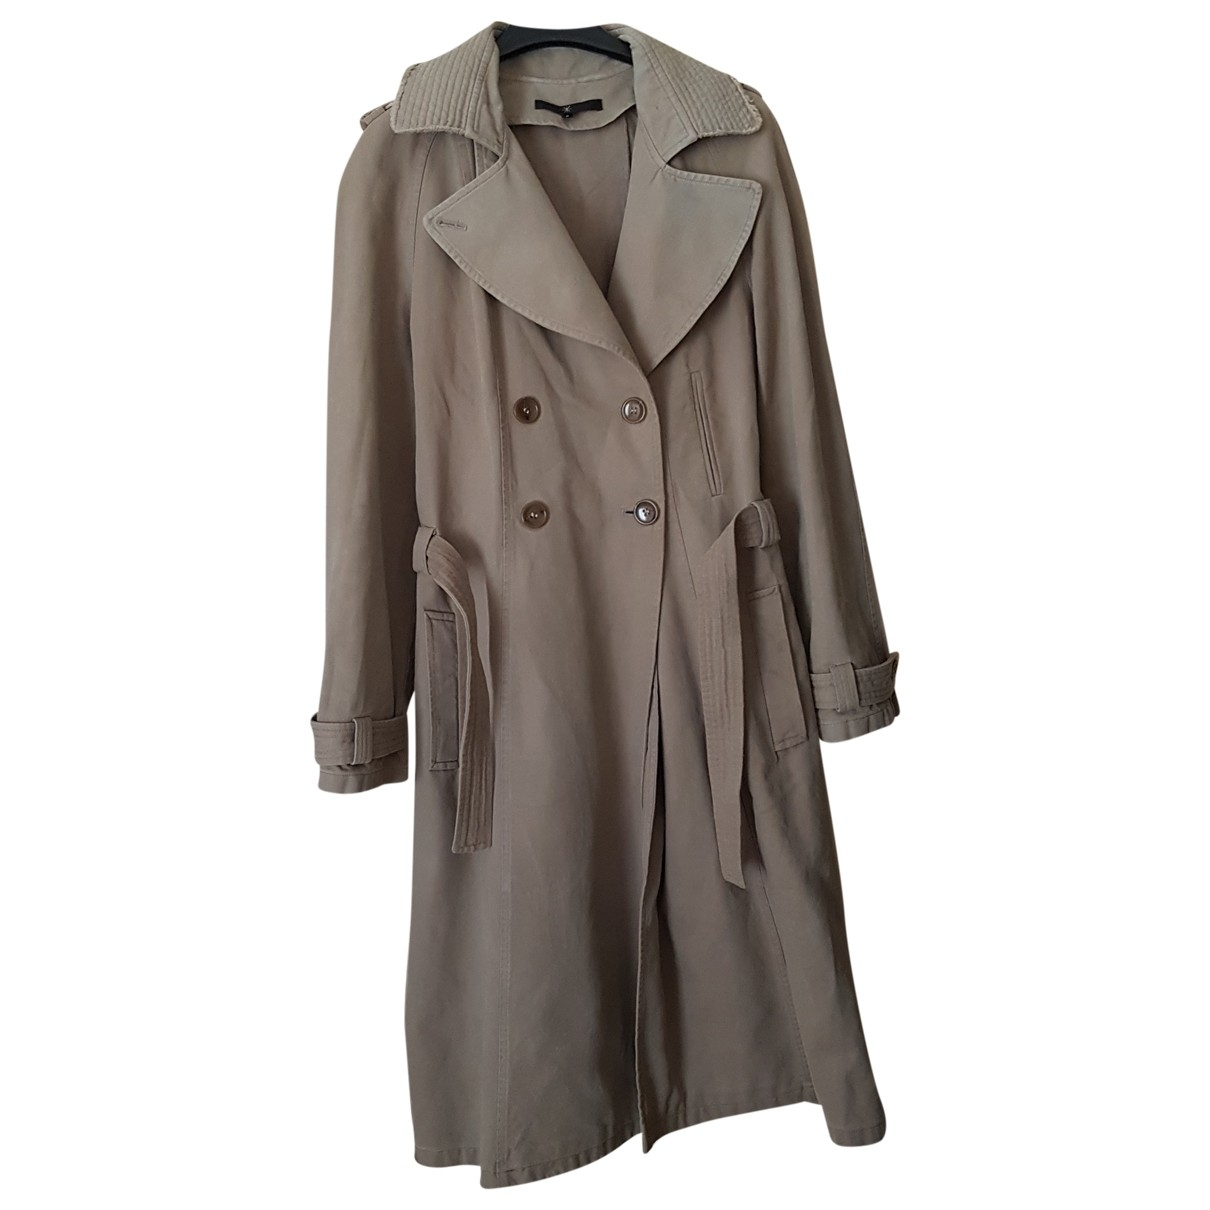 Isabel Marant Etoile \N Khaki Cotton Trench coat for Women 3 0-5